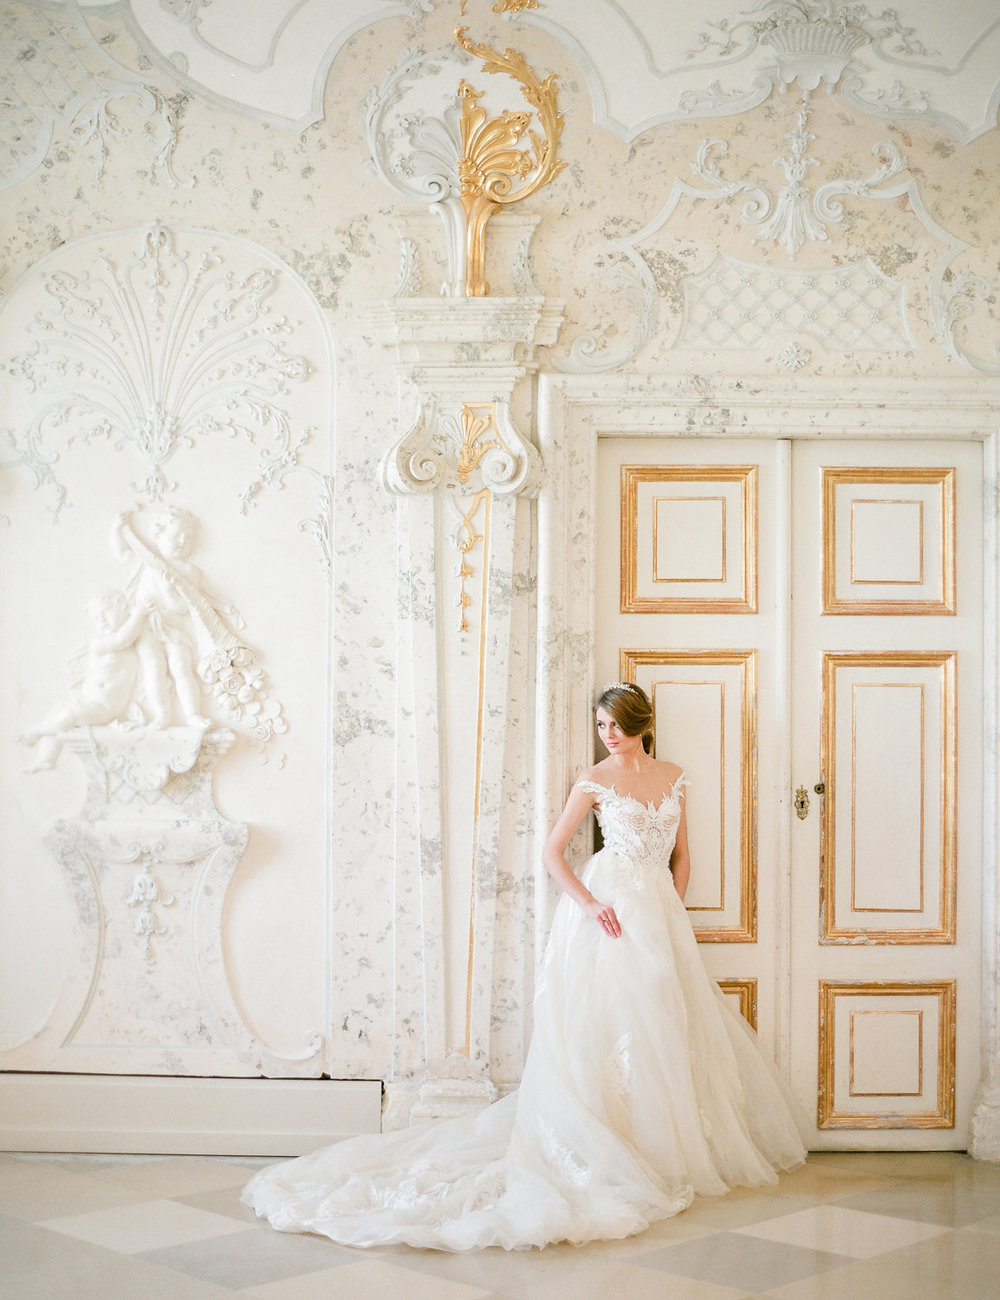 destination-wedding-vienna-austria-styled-schloss-hof-palace-highemotionweddings-nikolbodnarova (48).JPG